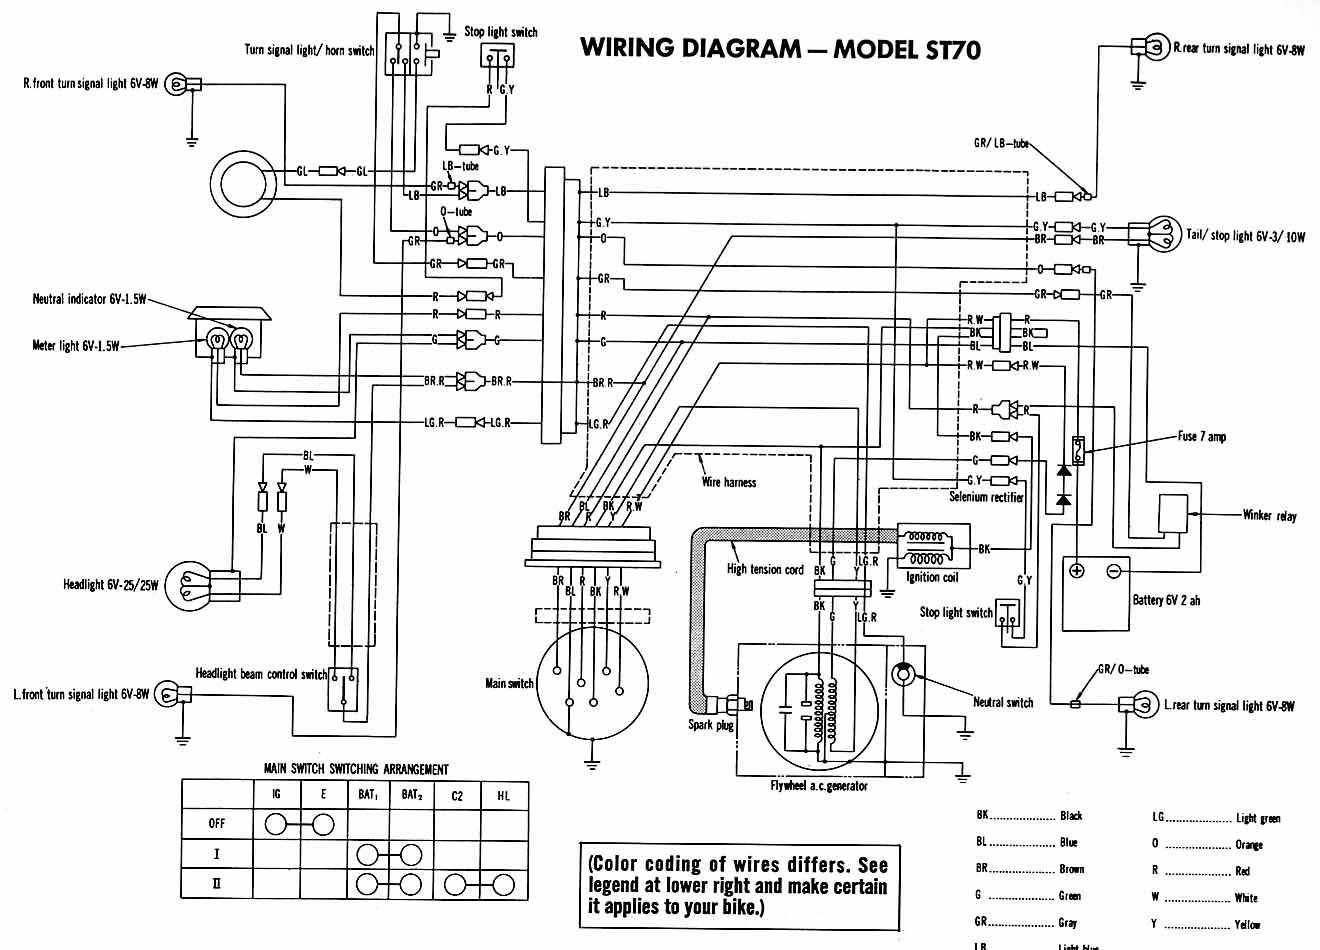 Motorcycle Wirering Diagram Yahoo Image Search Results Diagram Honda Motorcycle Wiring